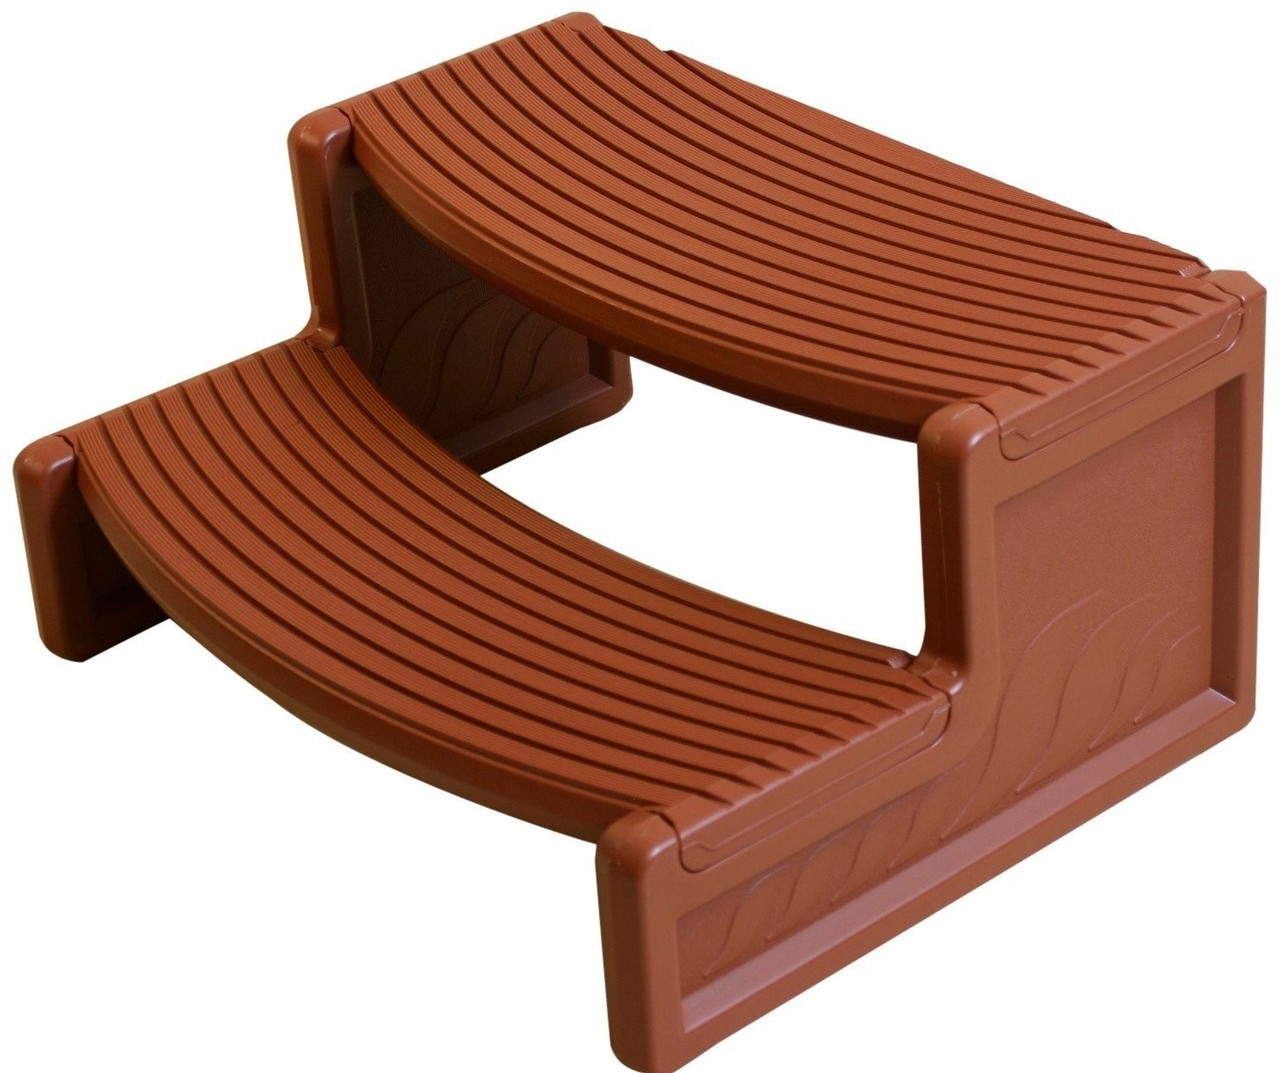 Hot Tub Steps Discount Hot Tubs For Sale | Ready Made Outdoor Steps | Inexpensive | Single | Grey Composite Decking | Wooden | Support